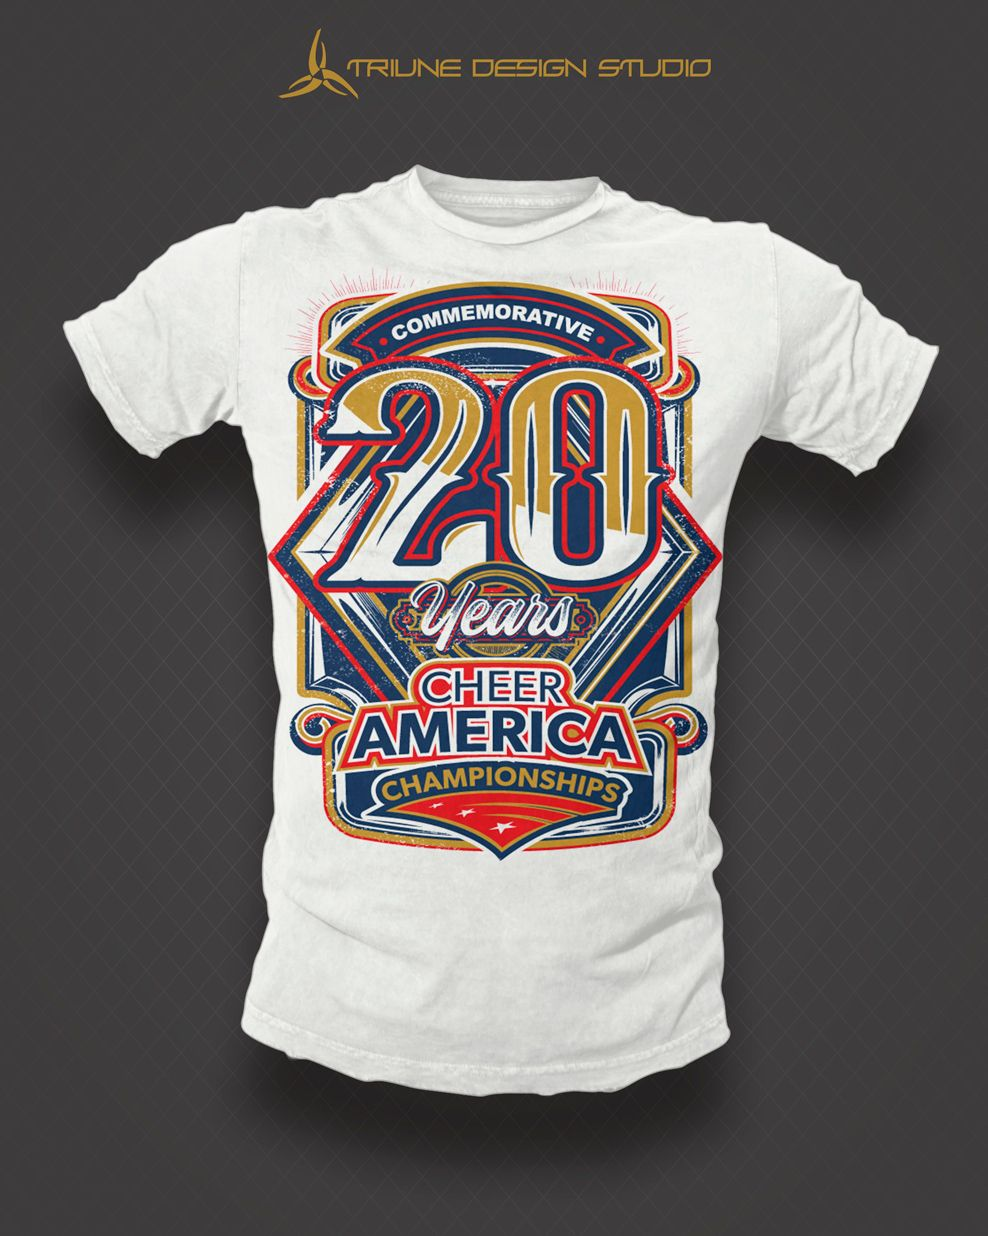 Cheer America 20th Anniversary Tshirt Design By Triune Design Studio